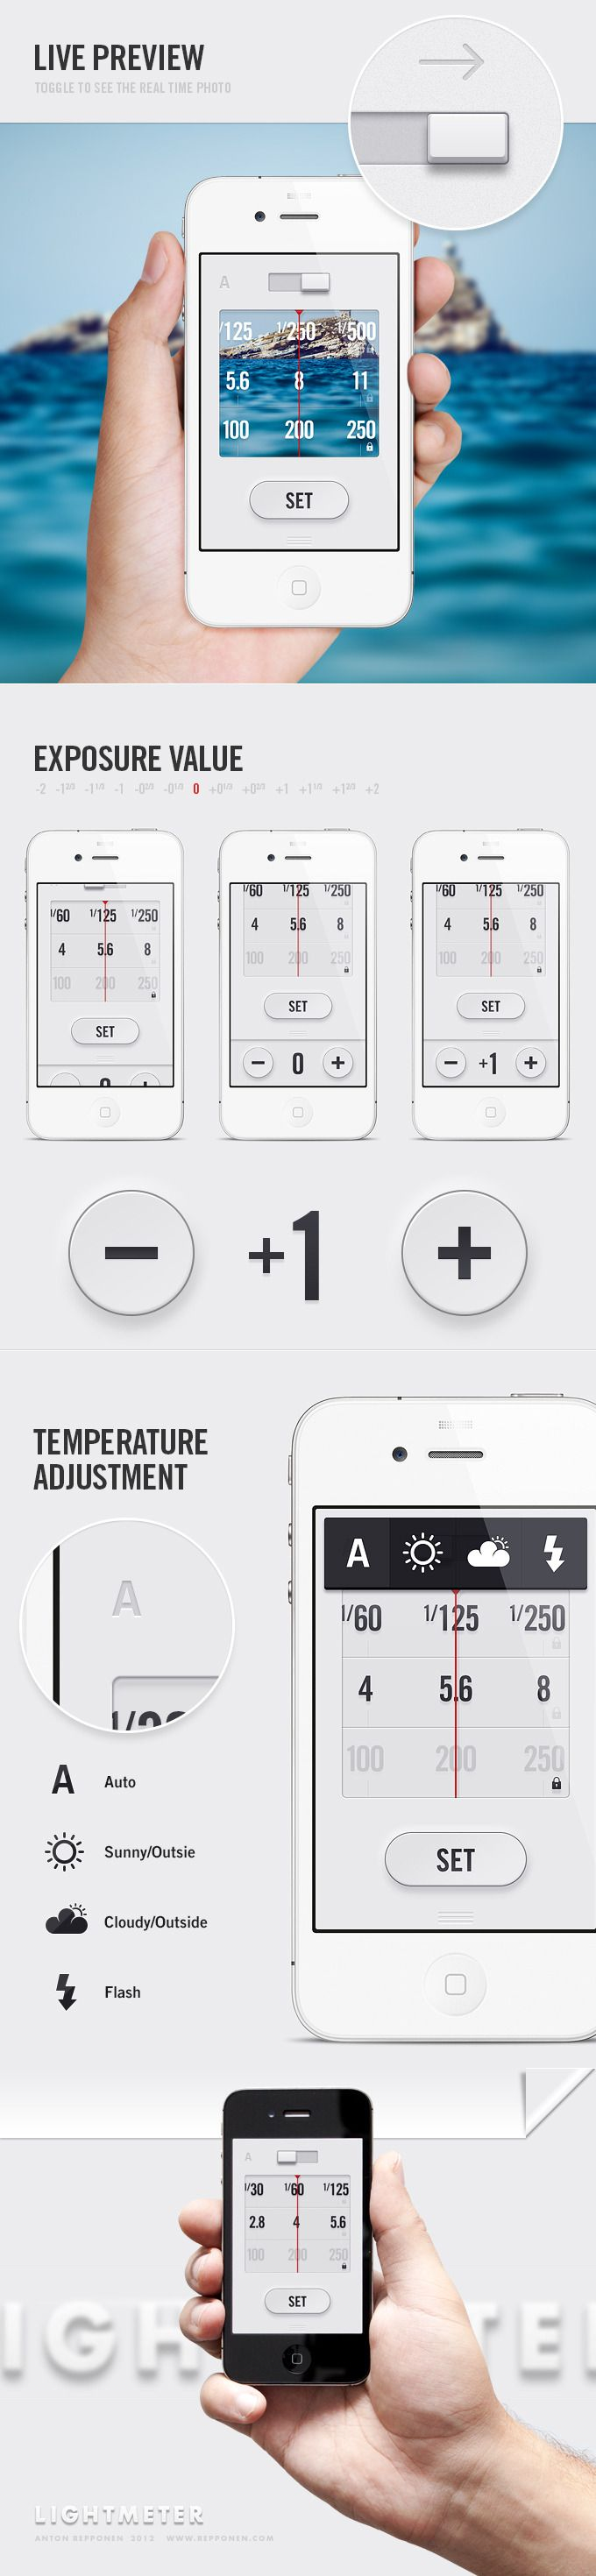 LightMeter #App #Mobile #UI #Digital